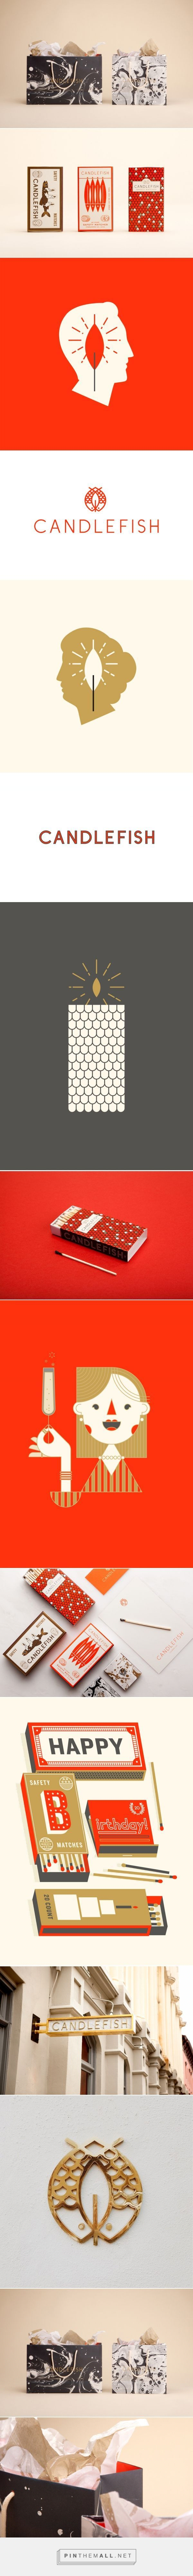 New Visual Identity for Candlefish by Fuzzco — BP&O... - a grouped images picture - Pin Them All